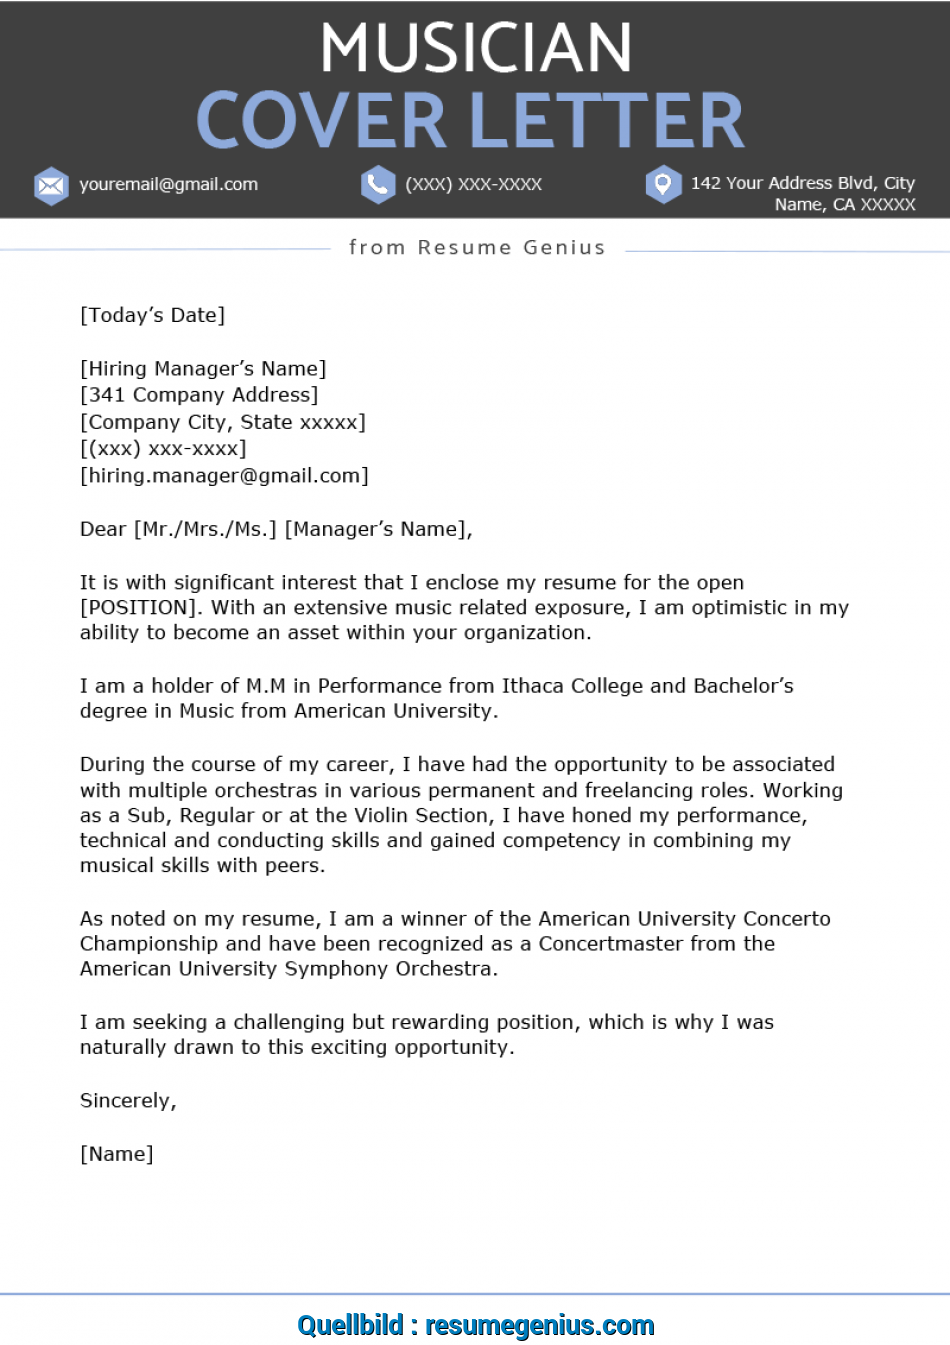 Qualifiziert Musician Cover Letter Sample Resume Genius